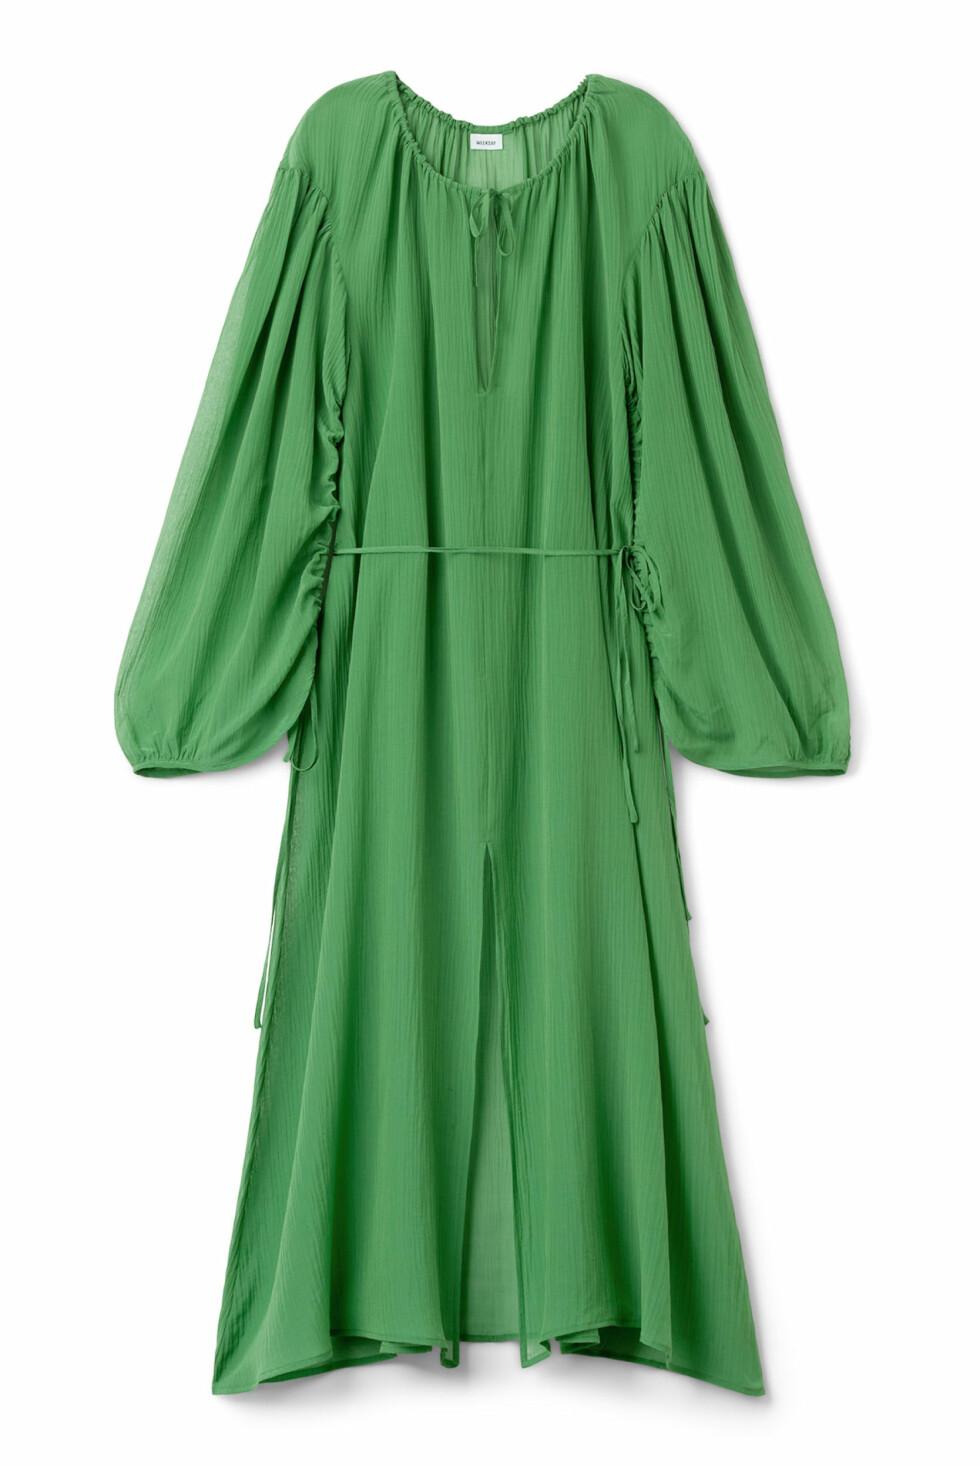 Kjole fra Weekday |1200,-| https://www.weekday.com/en_sek/women/categories/dresses-and-jumpsuits/_jcr_content/subdepartmentPar/productlisting.products/product.vinyana-dress-green.0588312001.html